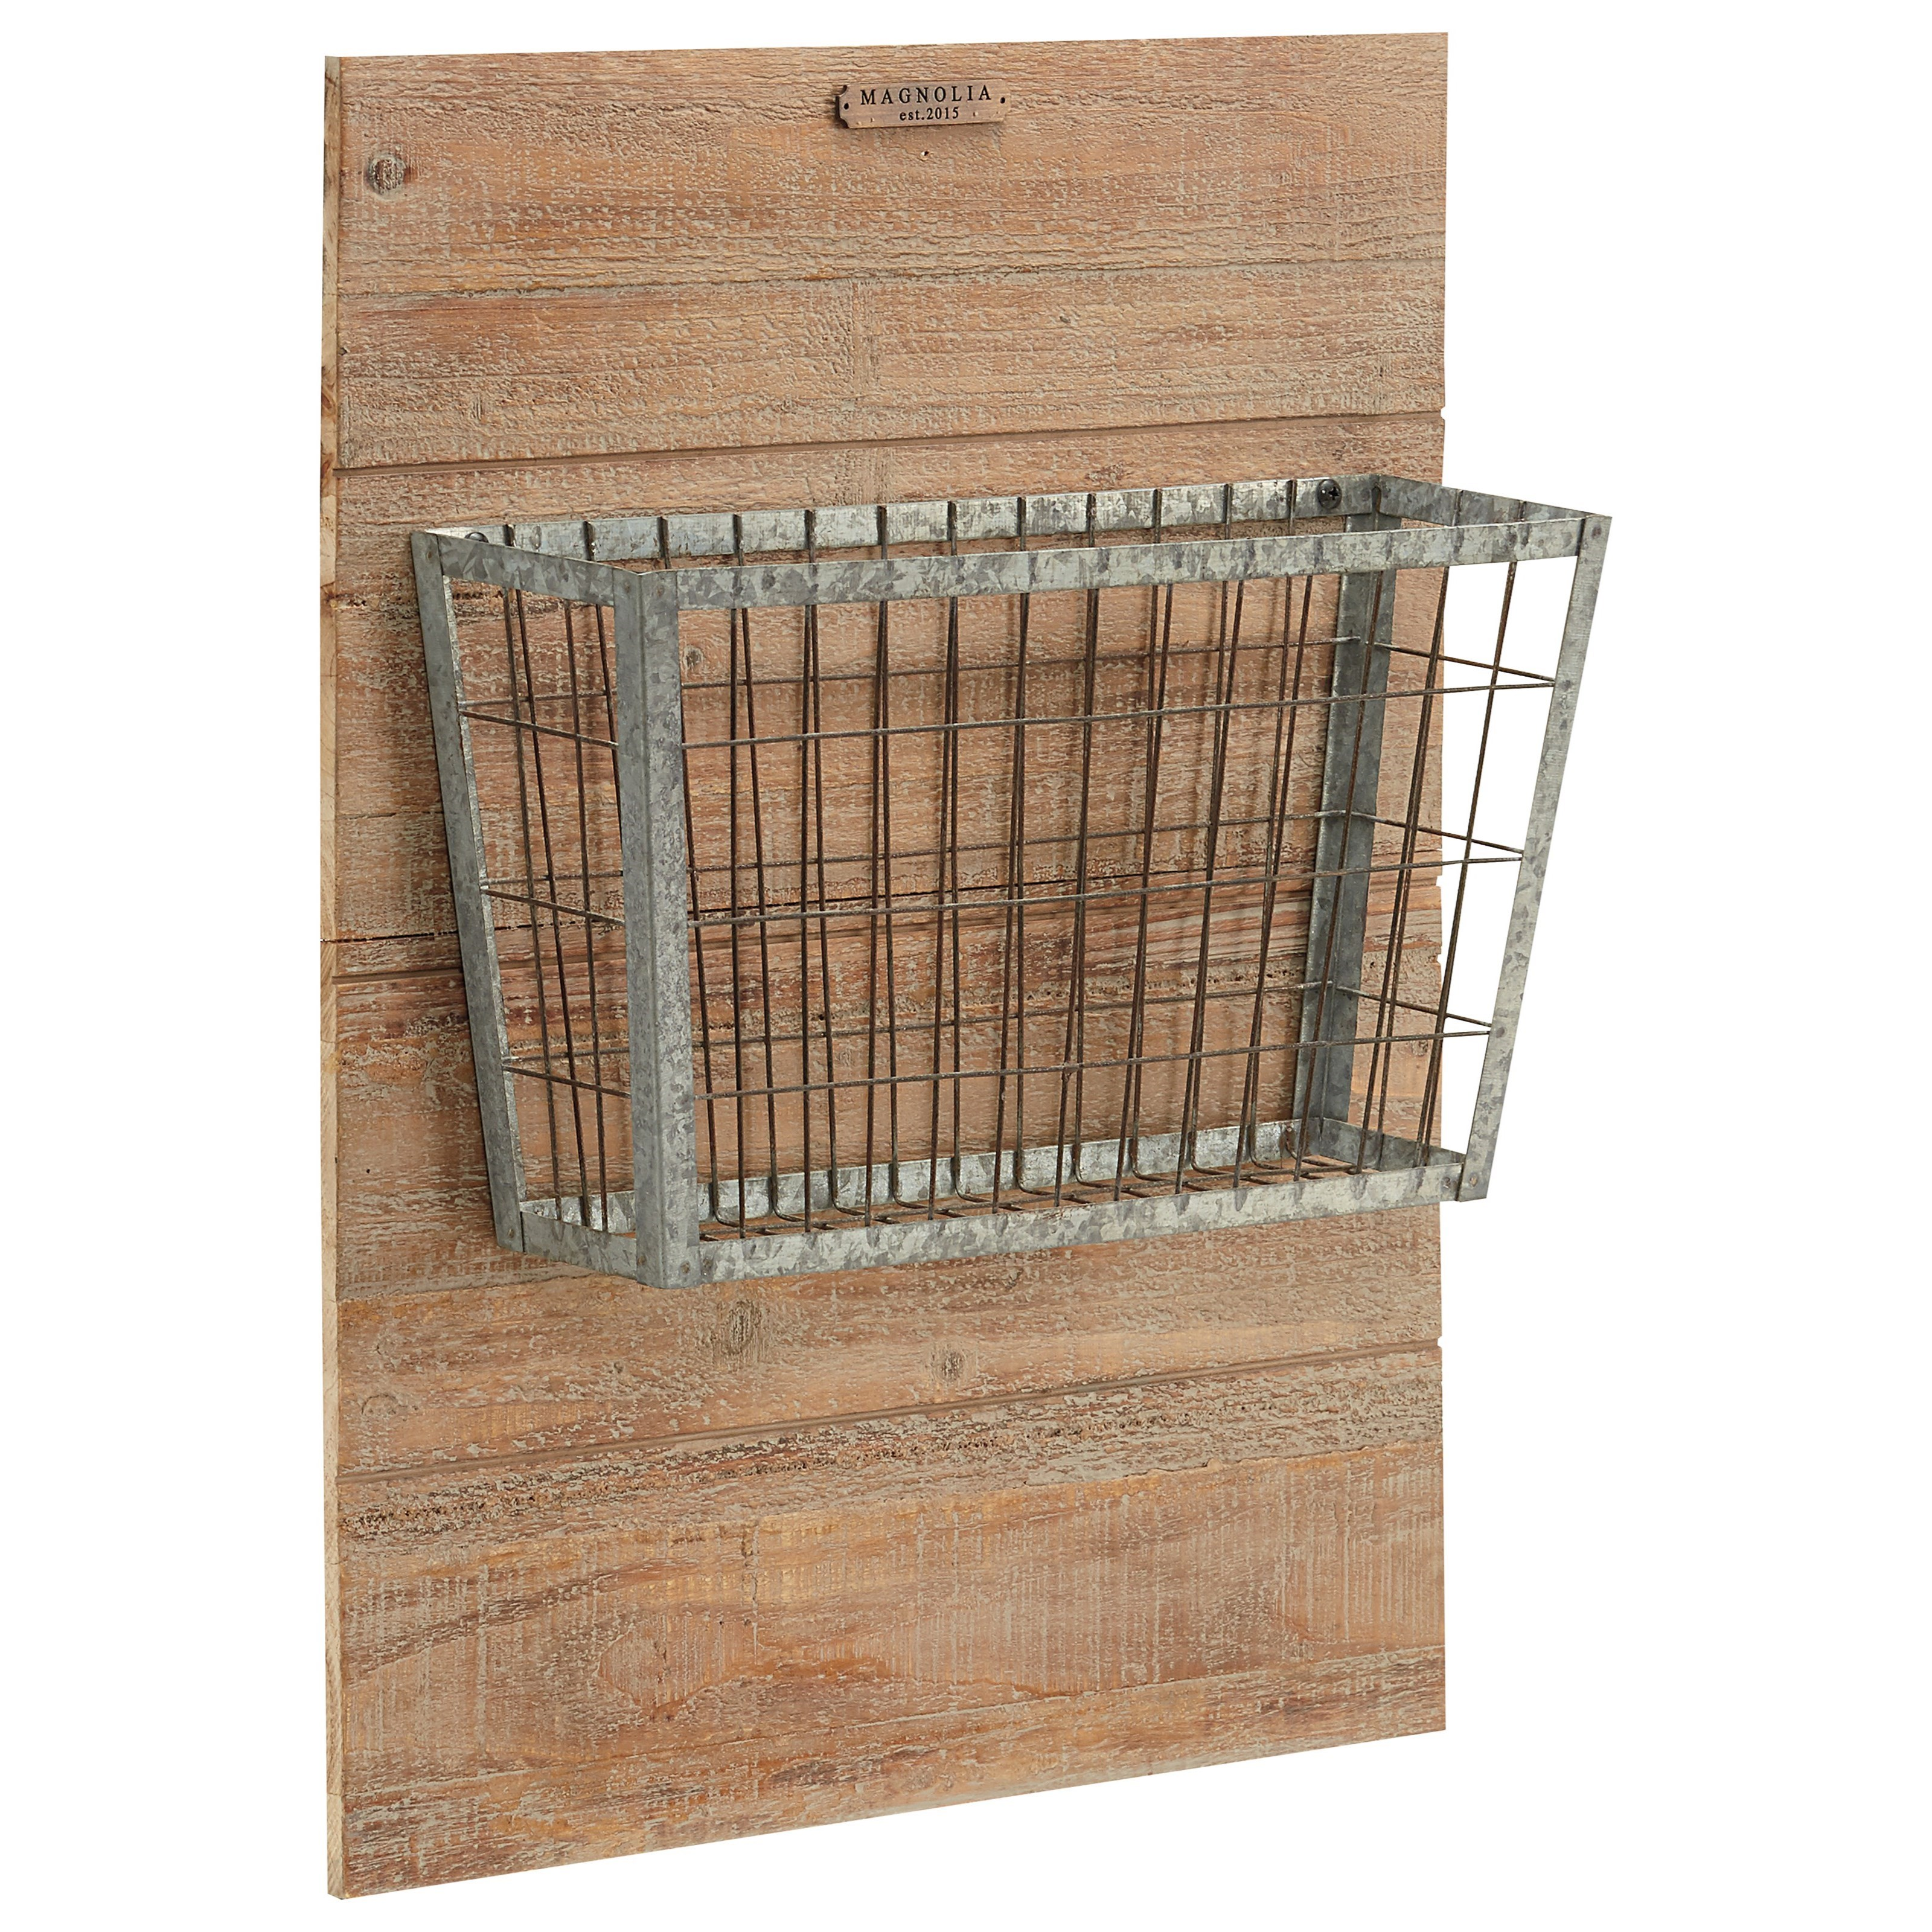 Magnolia Home by Joanna Gaines Accessories 90901513 Metal Basket On ...